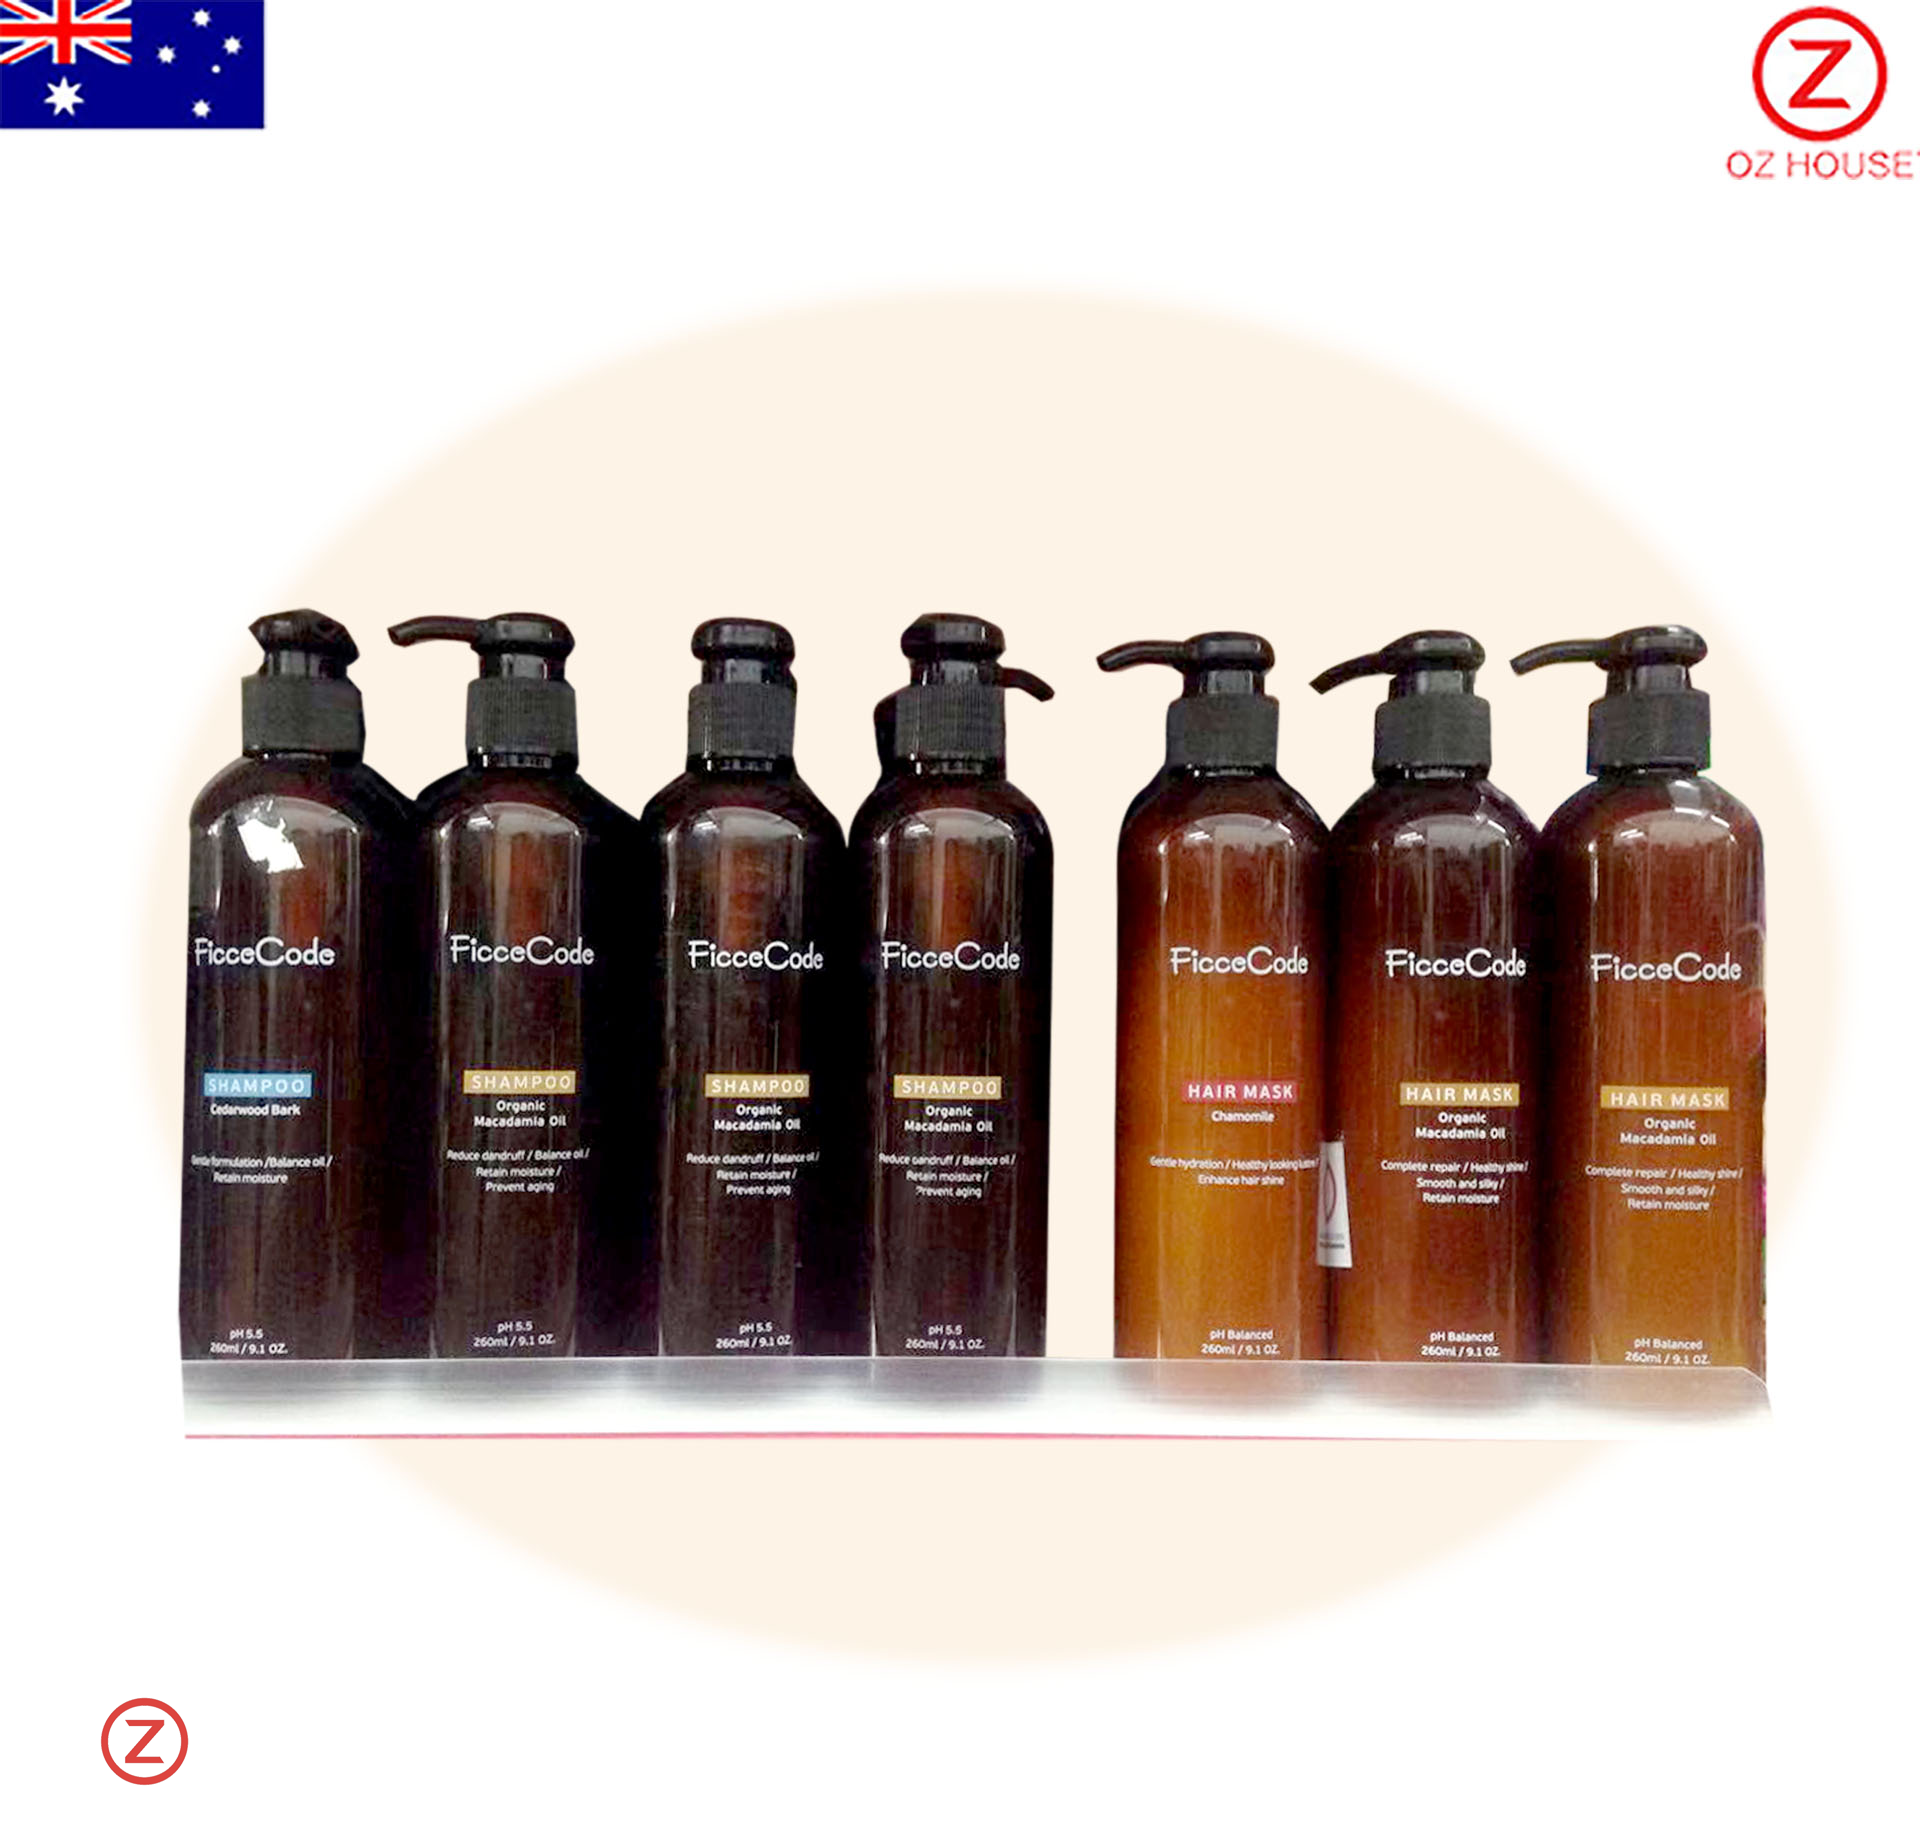 FicceCode Shampoo and Hair Mask